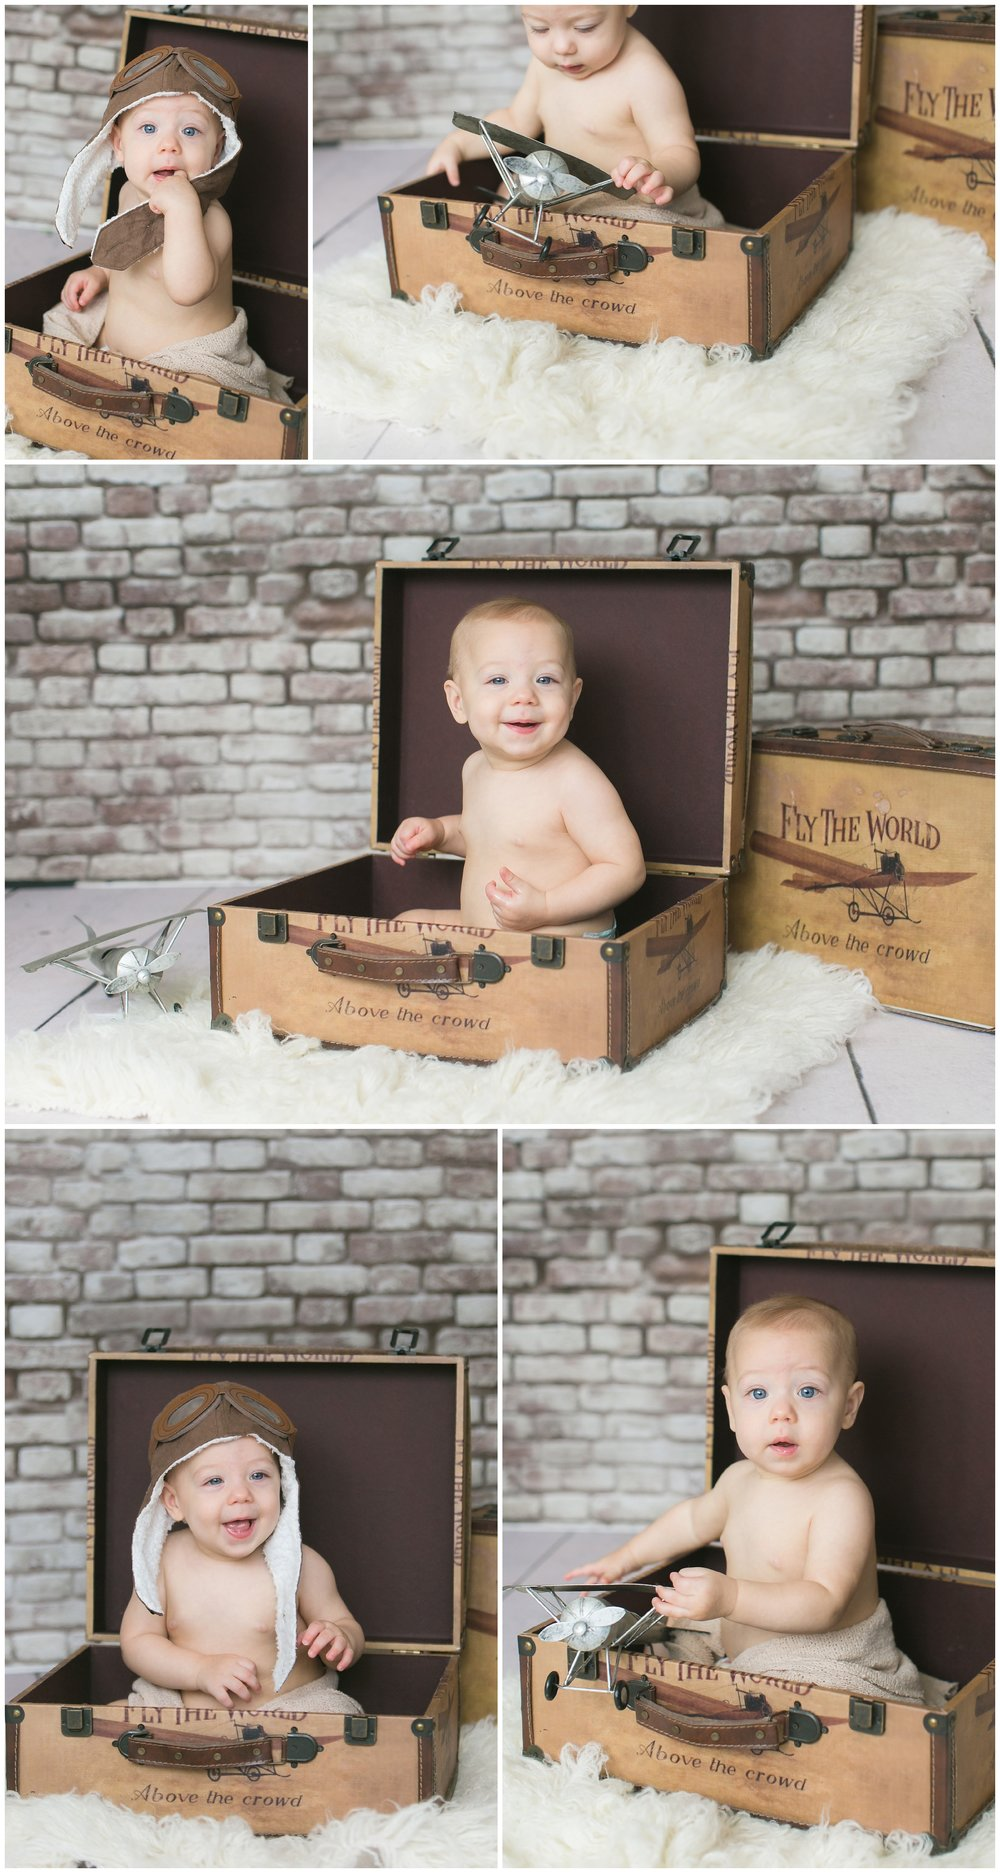 vintage-aviator-themed-portrait-session-8-month-sitting-boy-carrie-vines